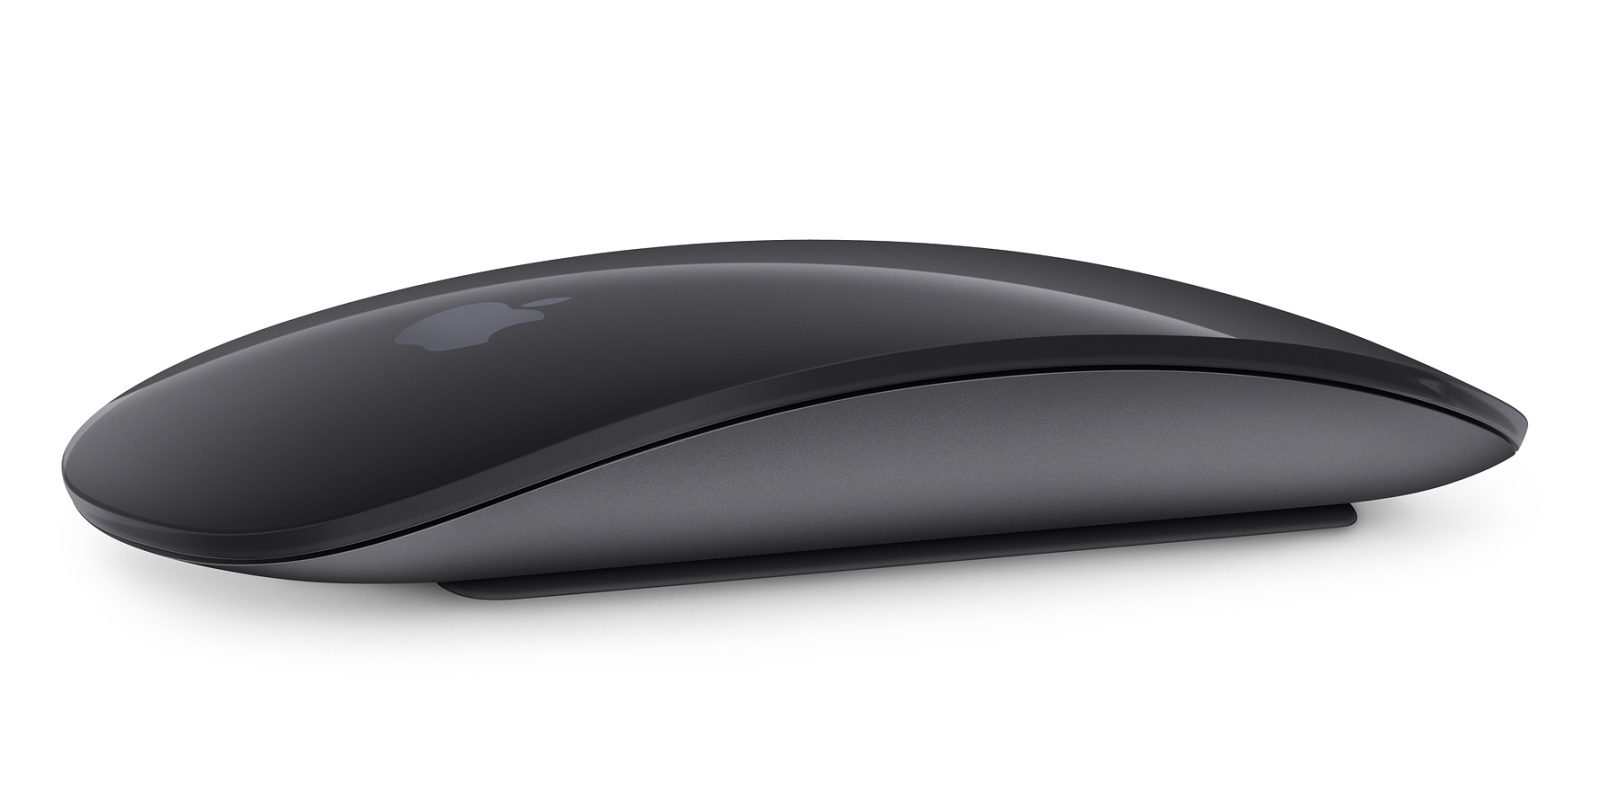 Apple's Magic Mouse 2 on sale from $40, Space Gray version now $86